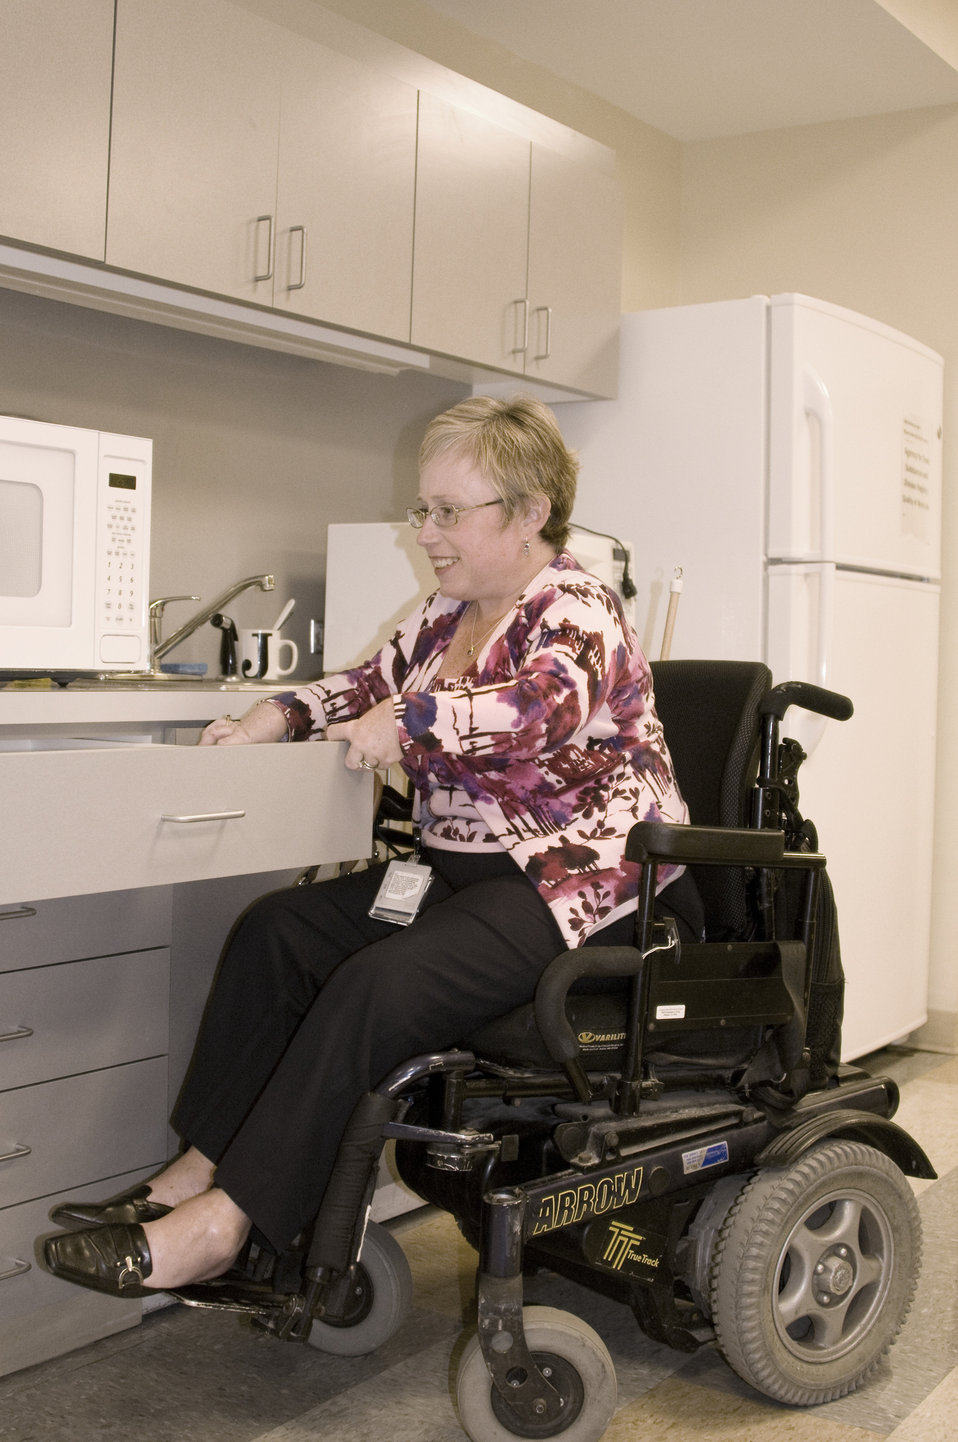 This woman who was seated in her wheelchair, was photographed in this kitchen setting while opening a cabinet drawer. Note that the height o